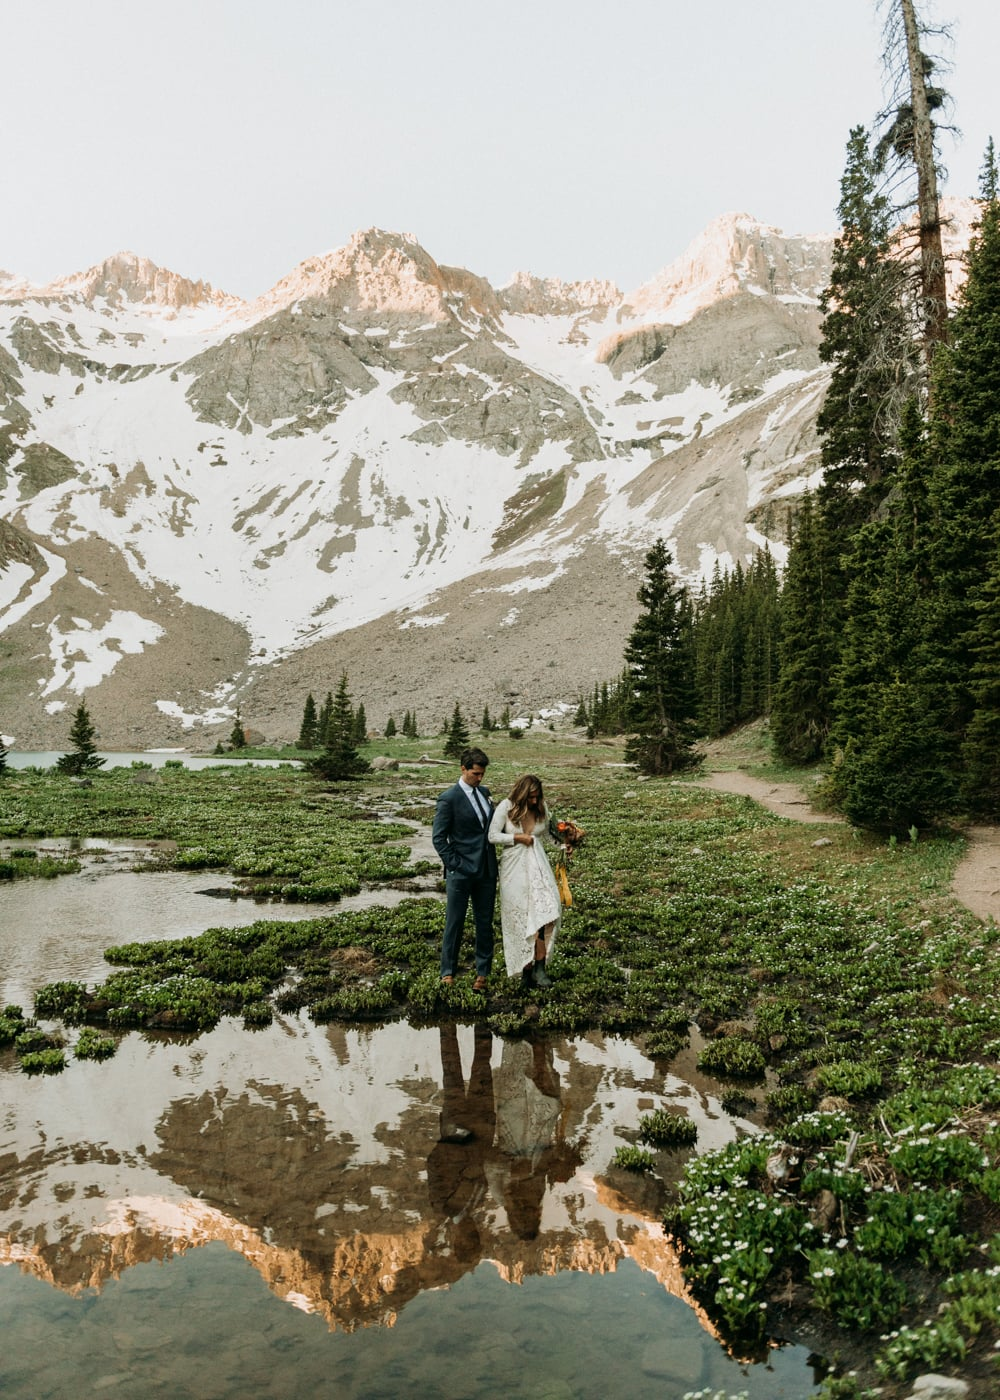 A couple walking through wildflowers in front of an alpine lake and mountains in Telluride, Colorado on their elopement day.